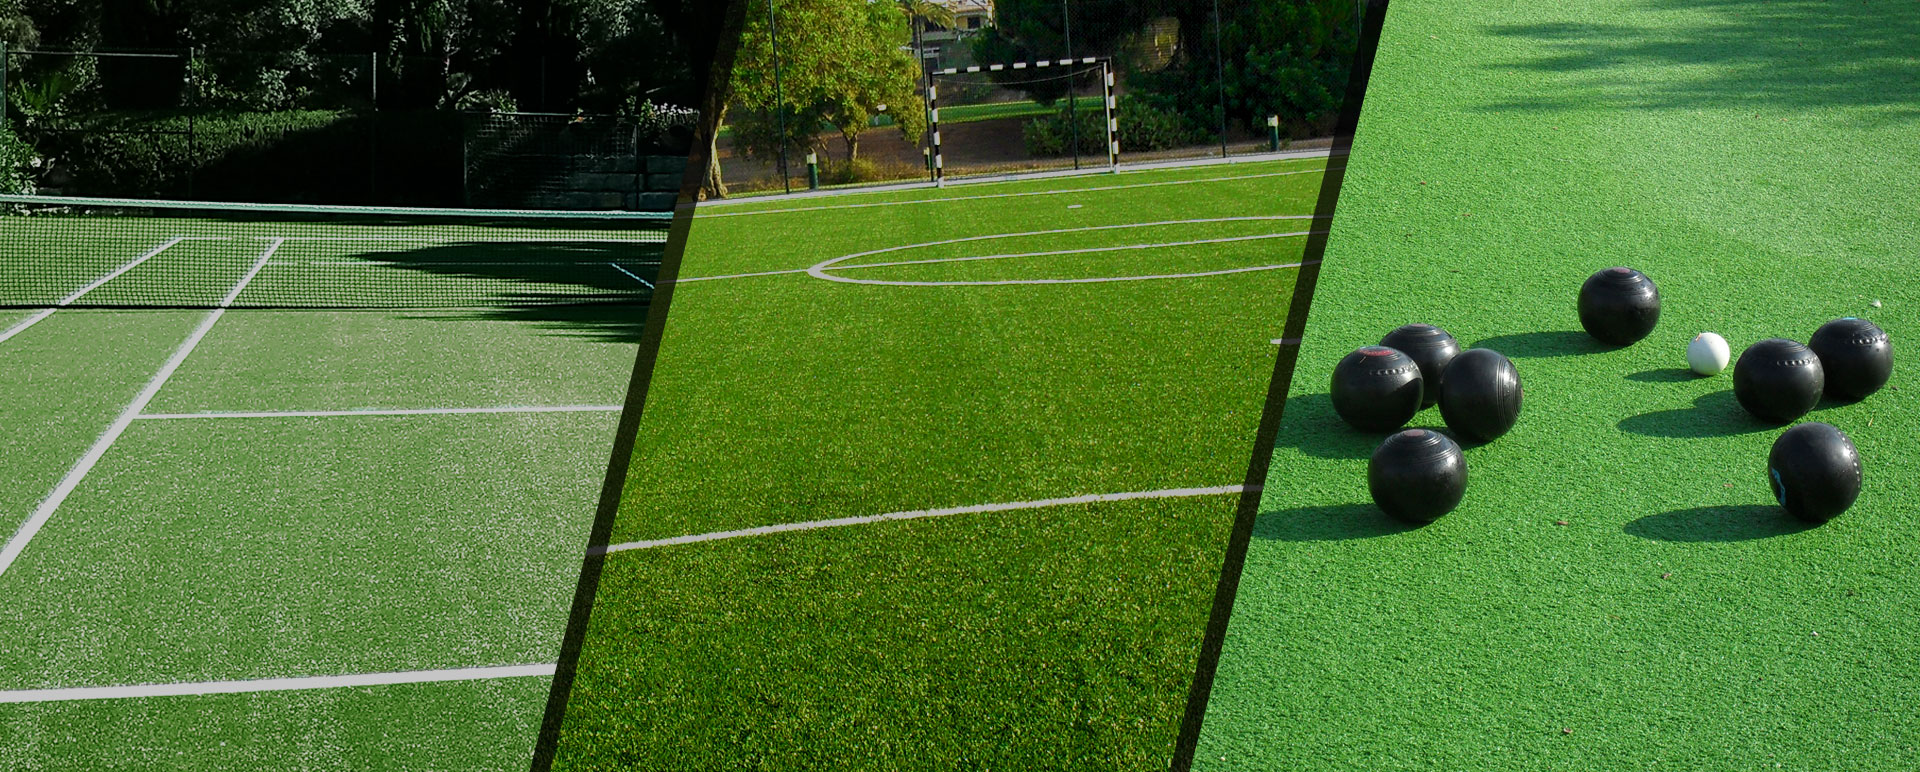 Artificial Grass - Sports Surfaces